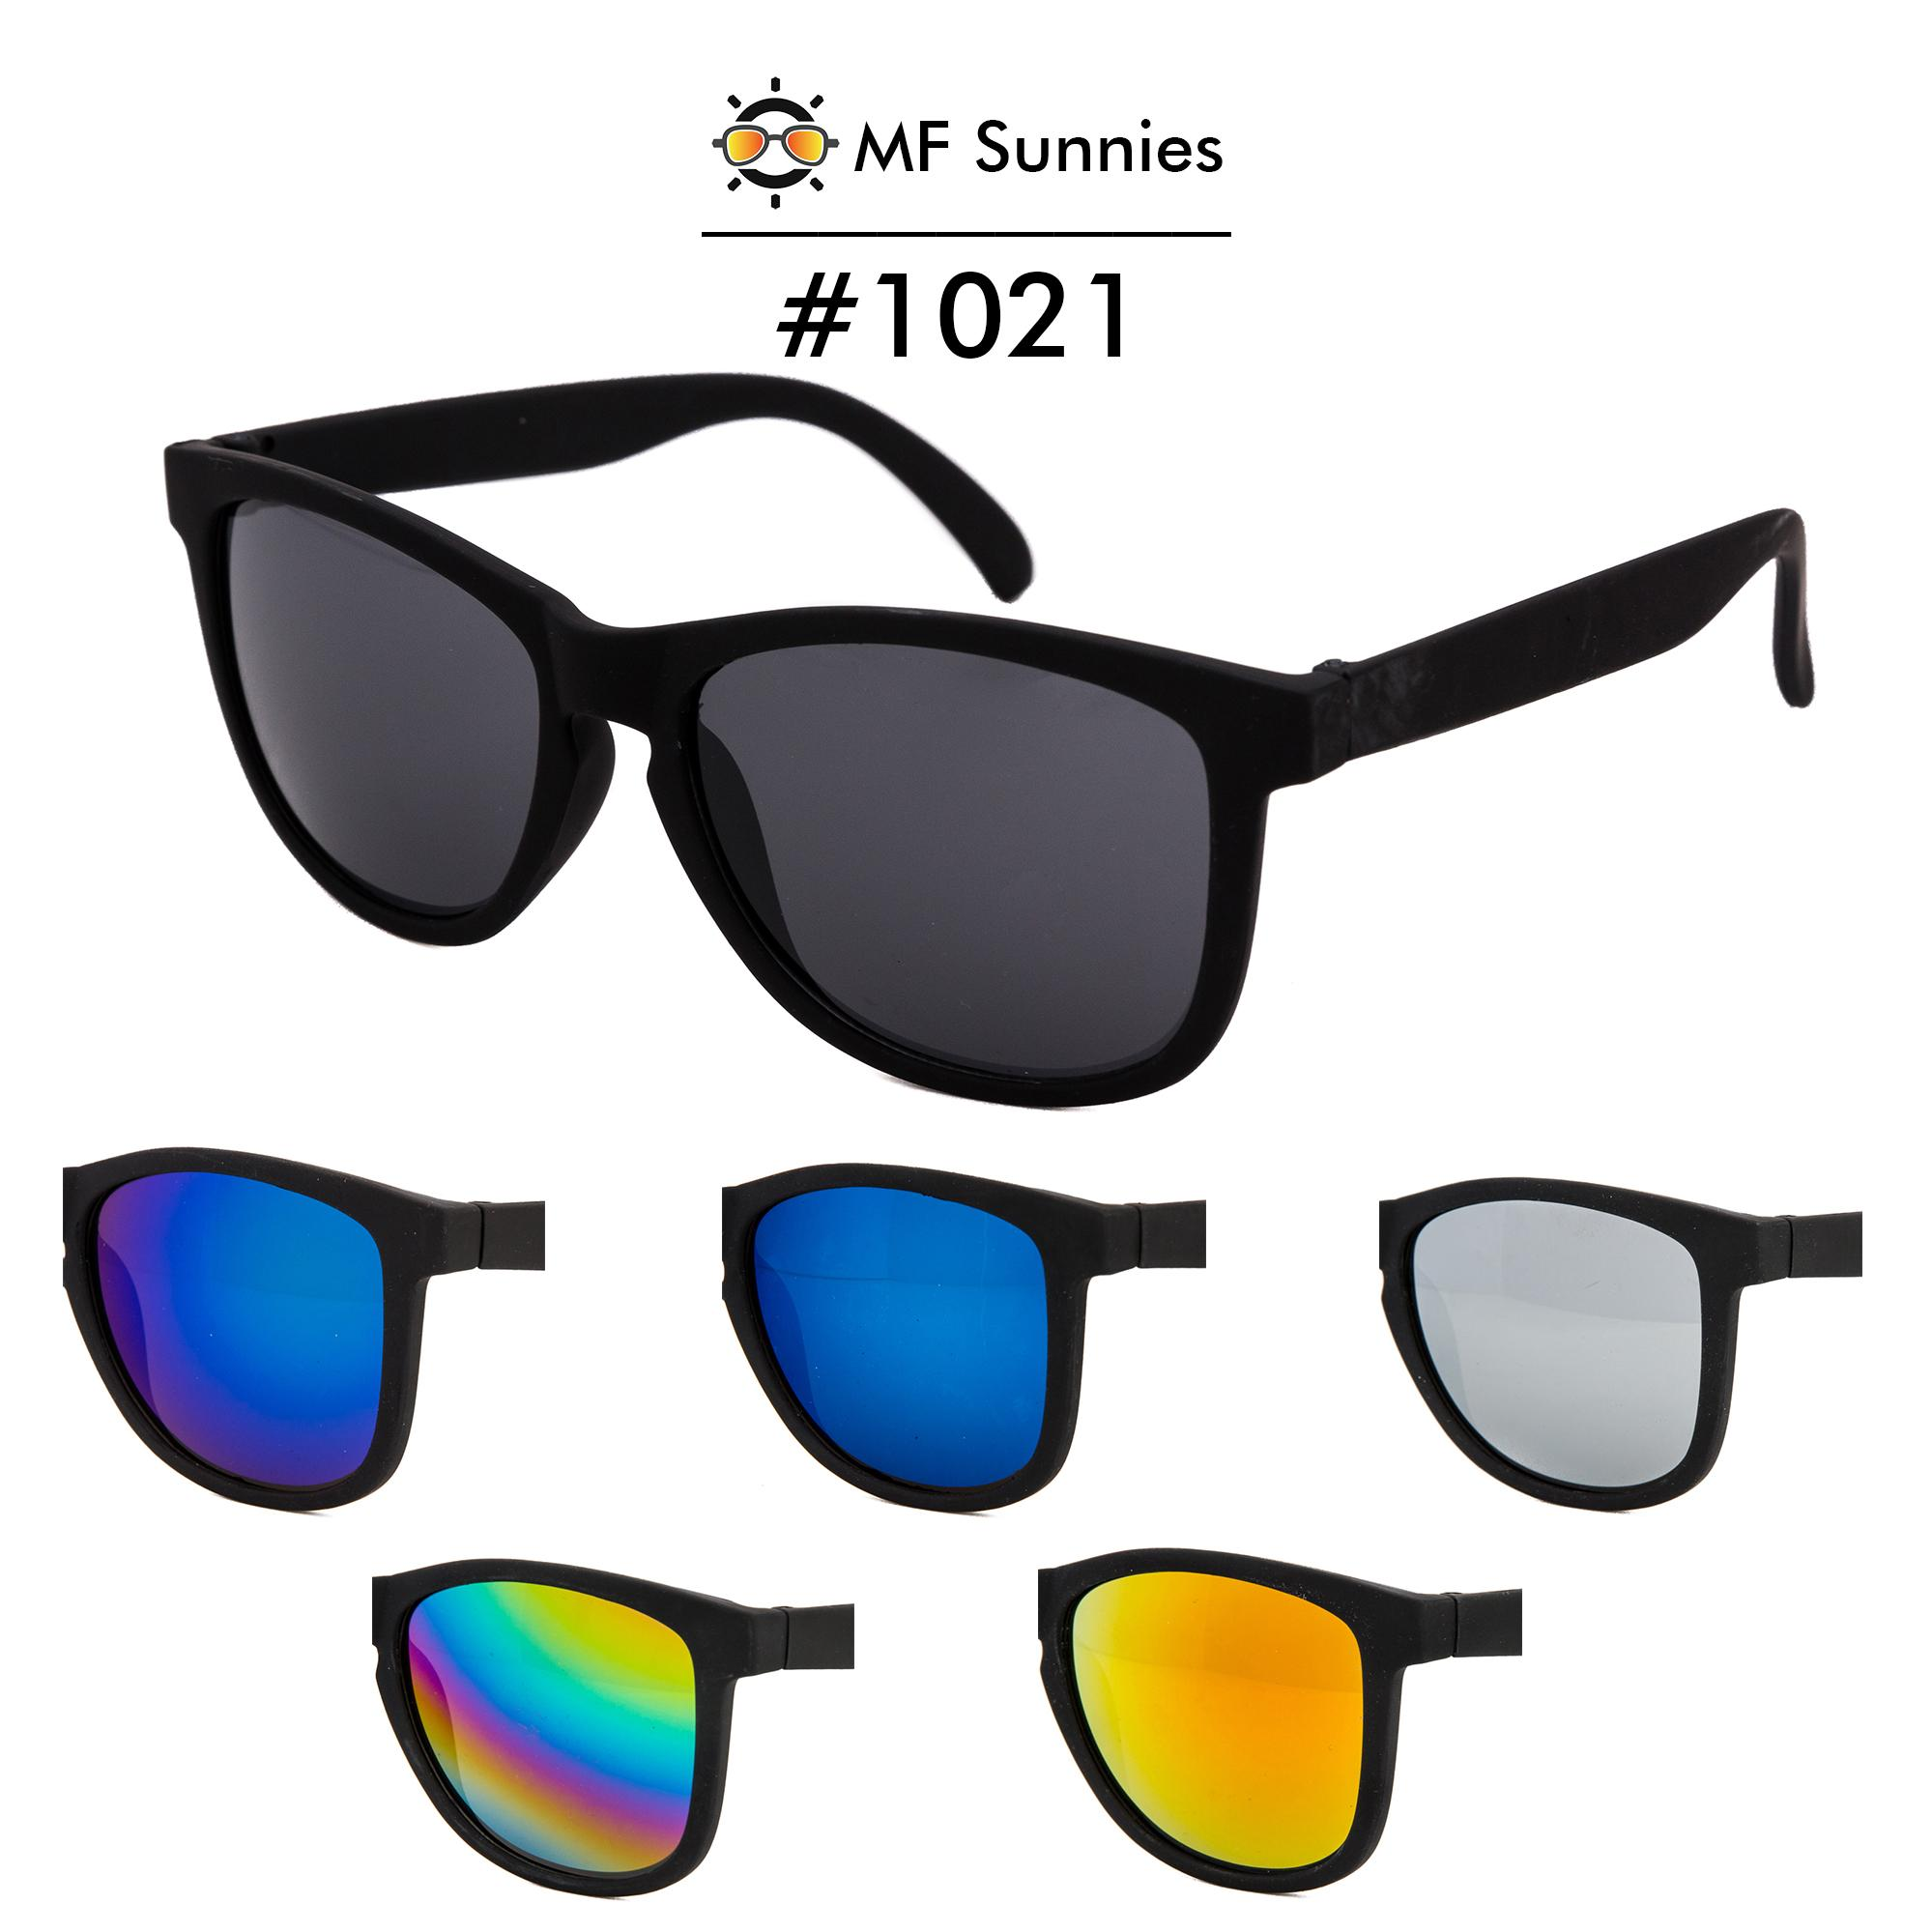 12fb4a159dd0 Sunglasses For Women for sale - Womens Sunglasses online brands ...